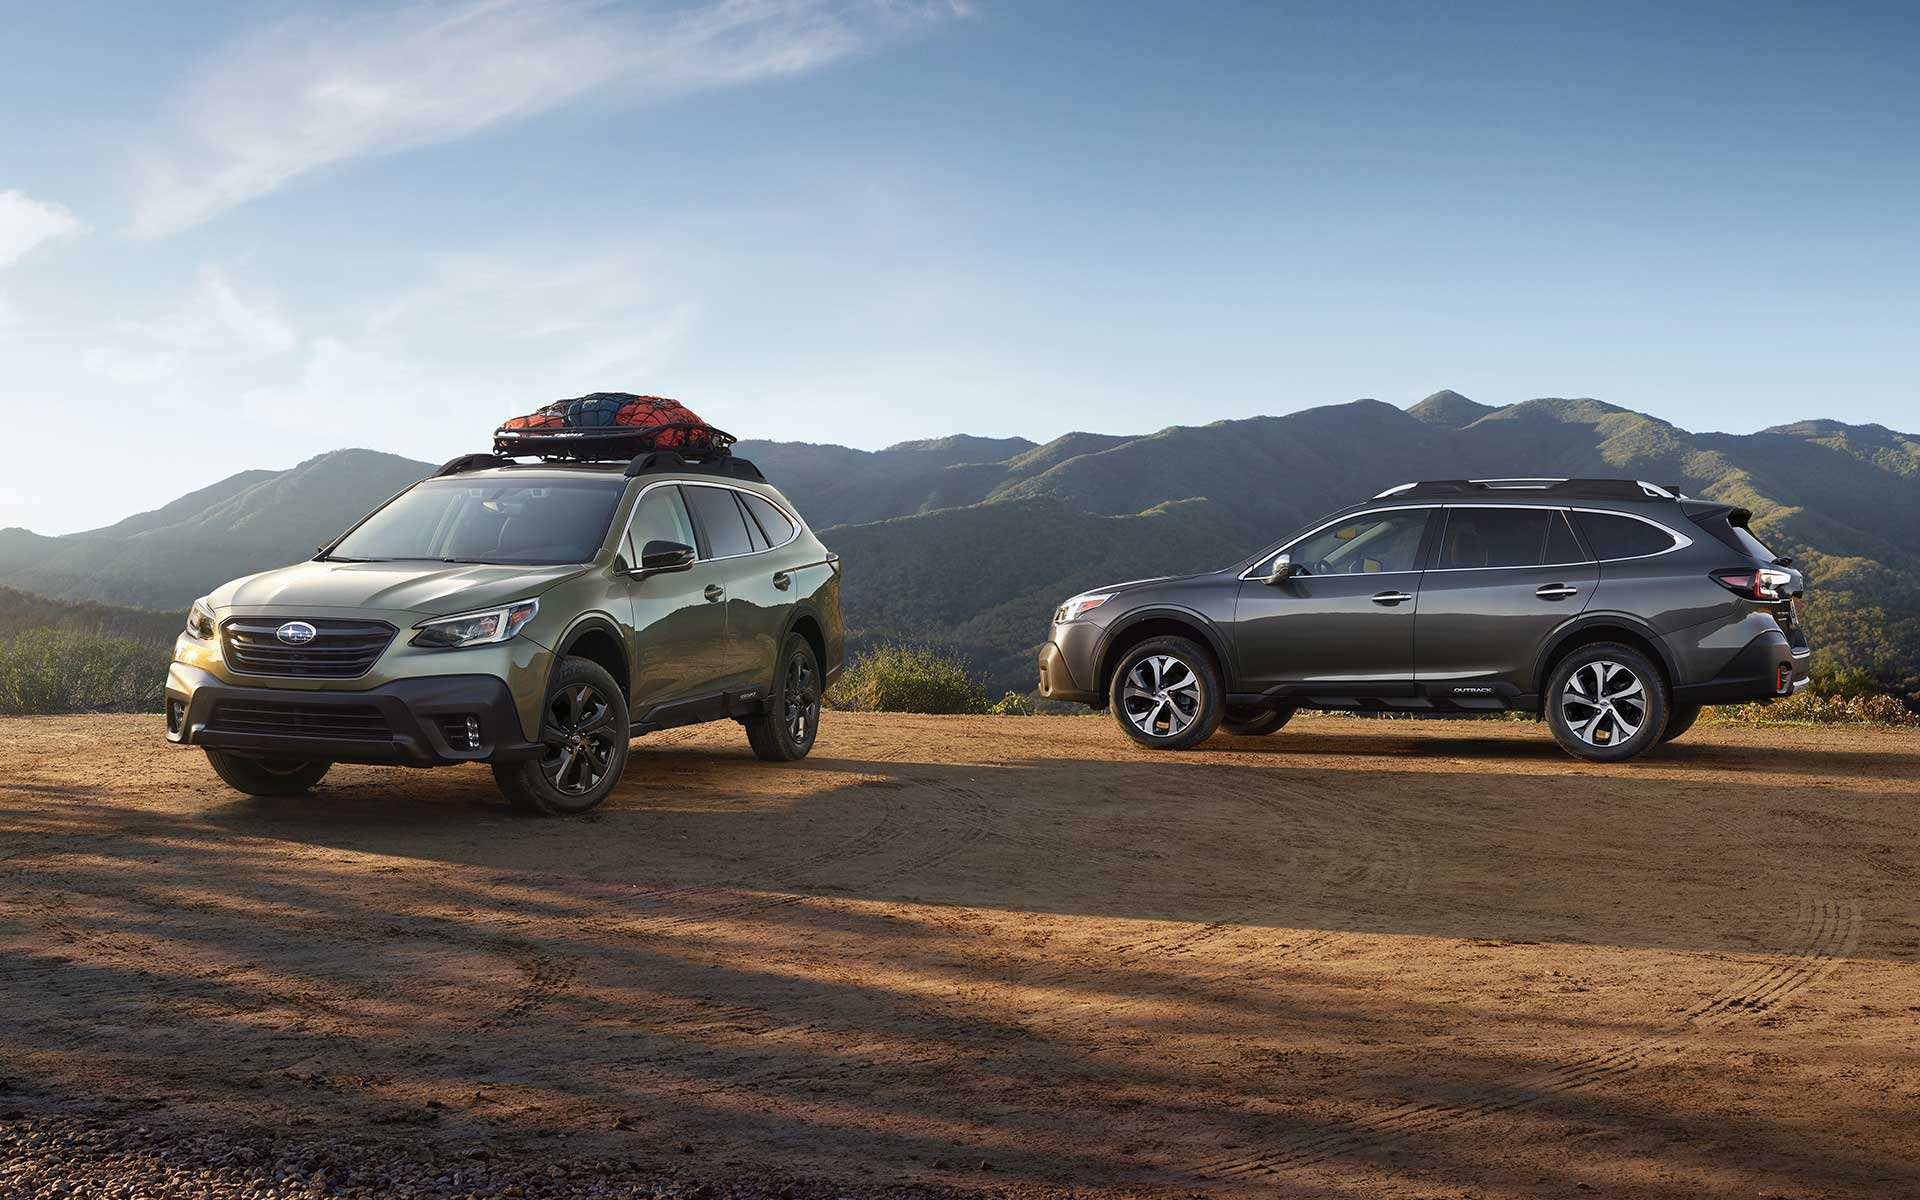 20 Concept of Subaru Outback 2020 Spesification with Subaru Outback 2020